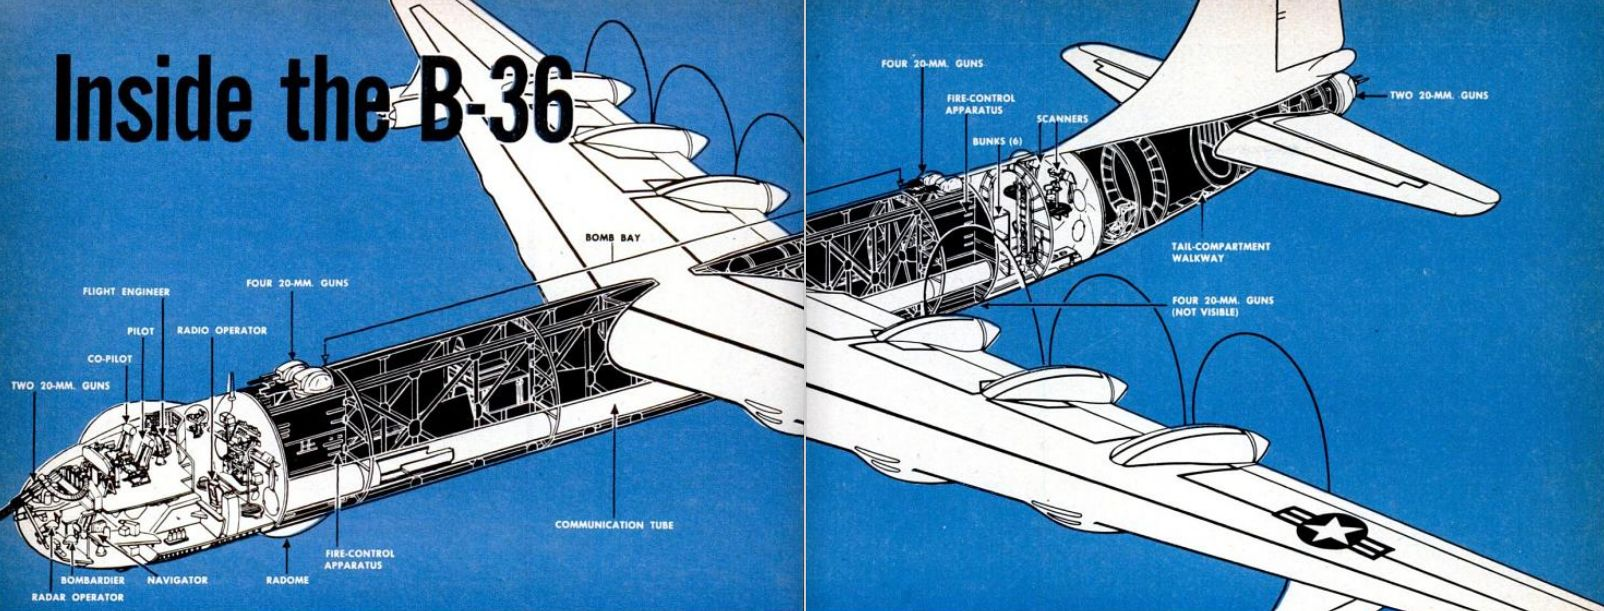 Cutaway Drawing of Convair B-36 Bomber, 1950